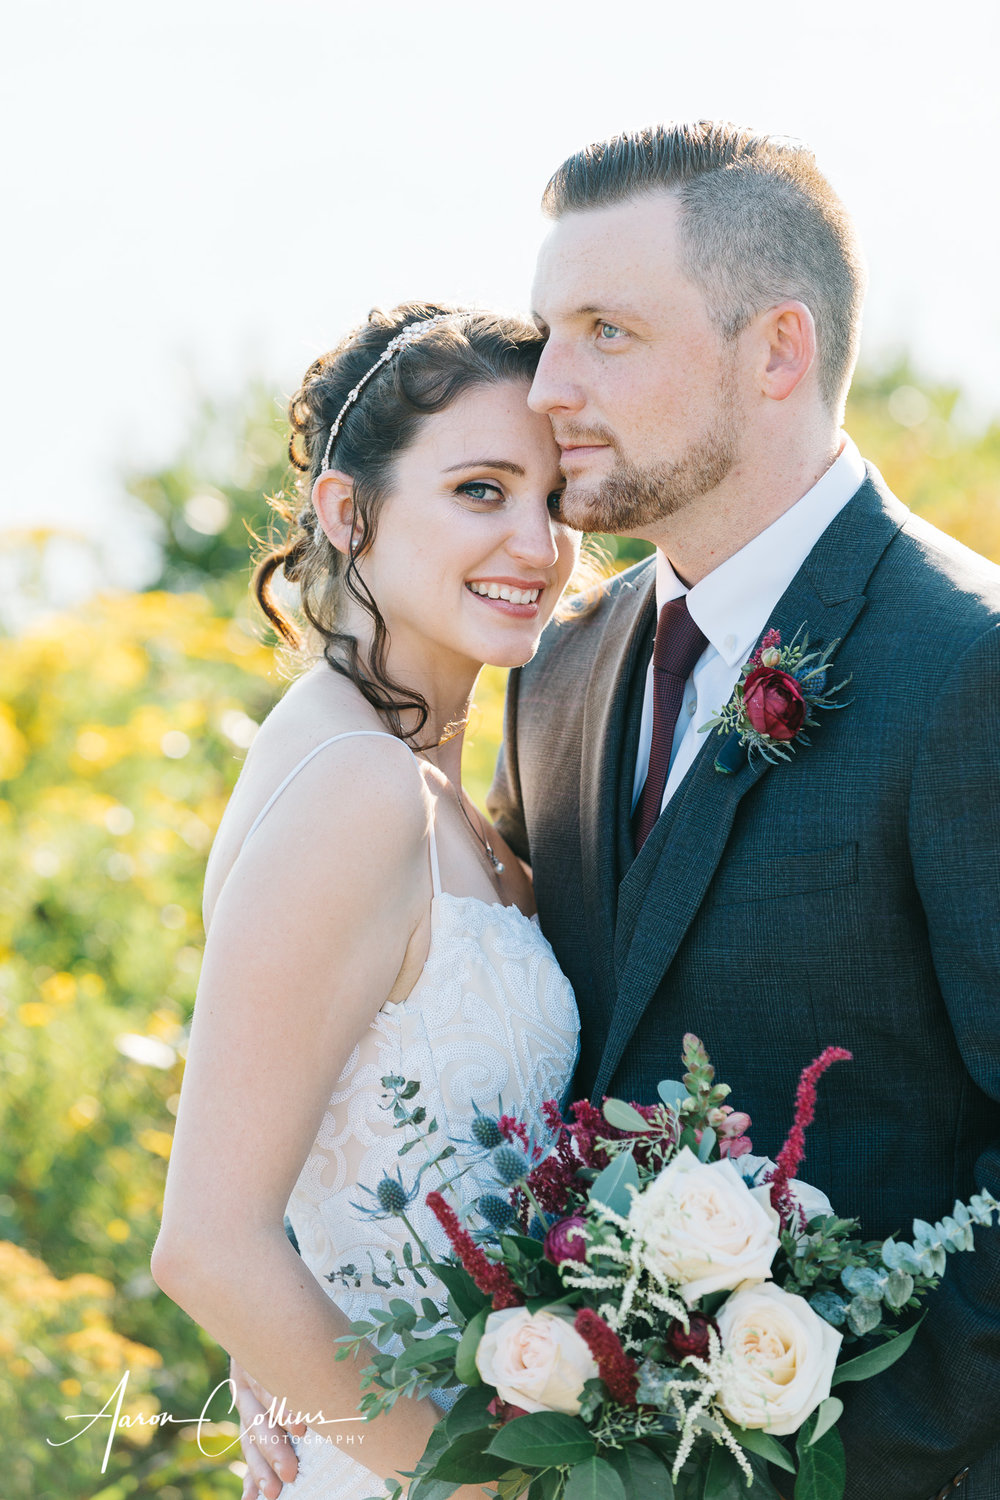 Portrait of Bride and Groom at Mohegan Bluffs on Block Island